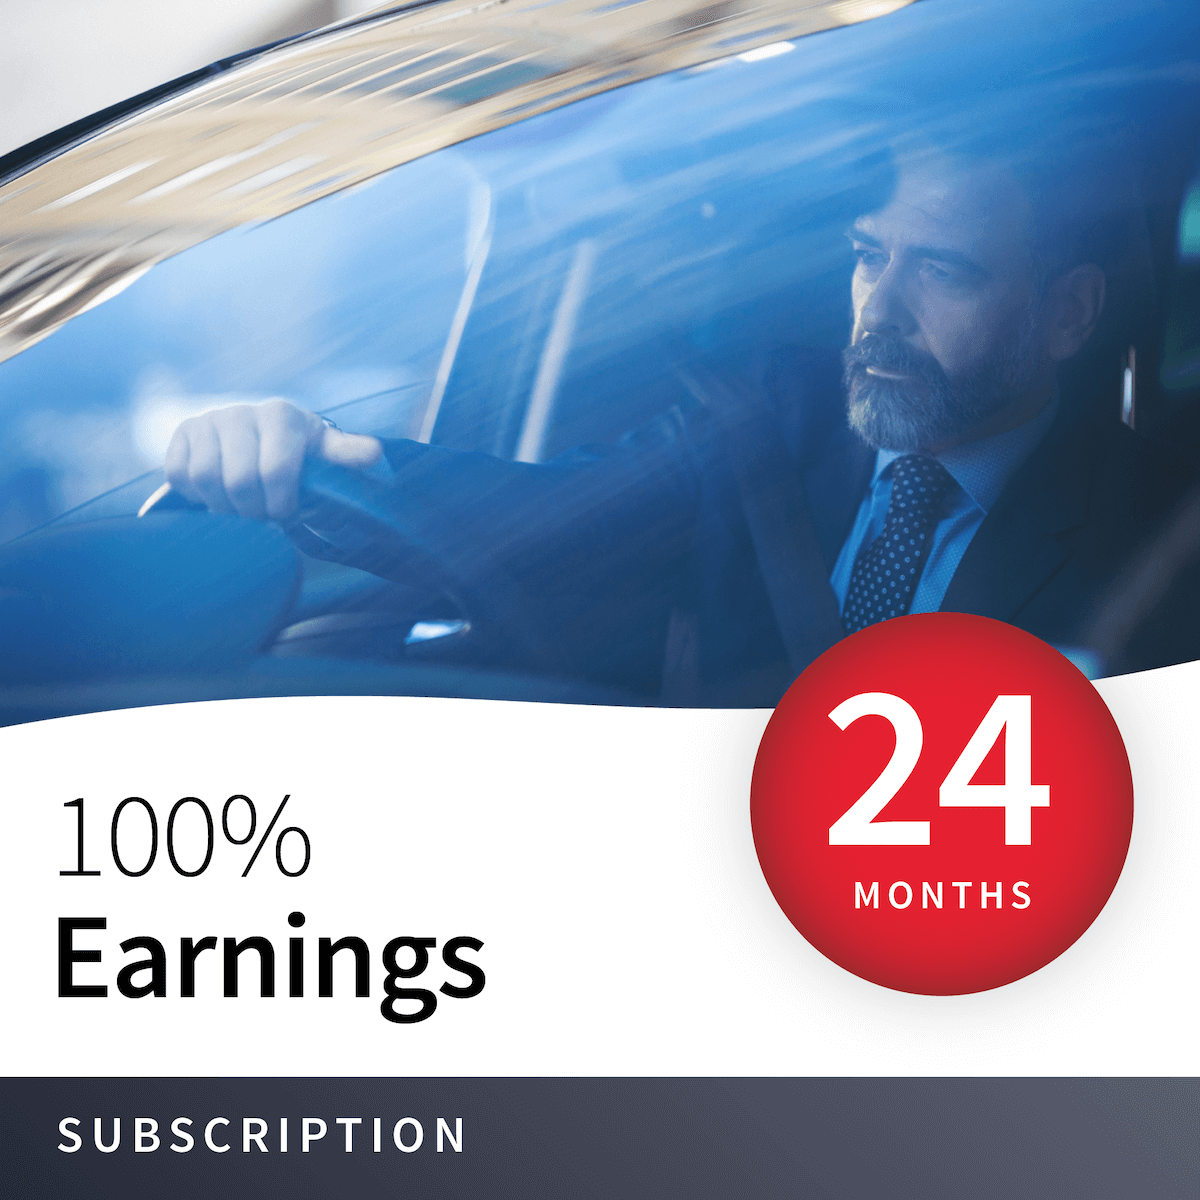 100% Earnings - 24 Months 11